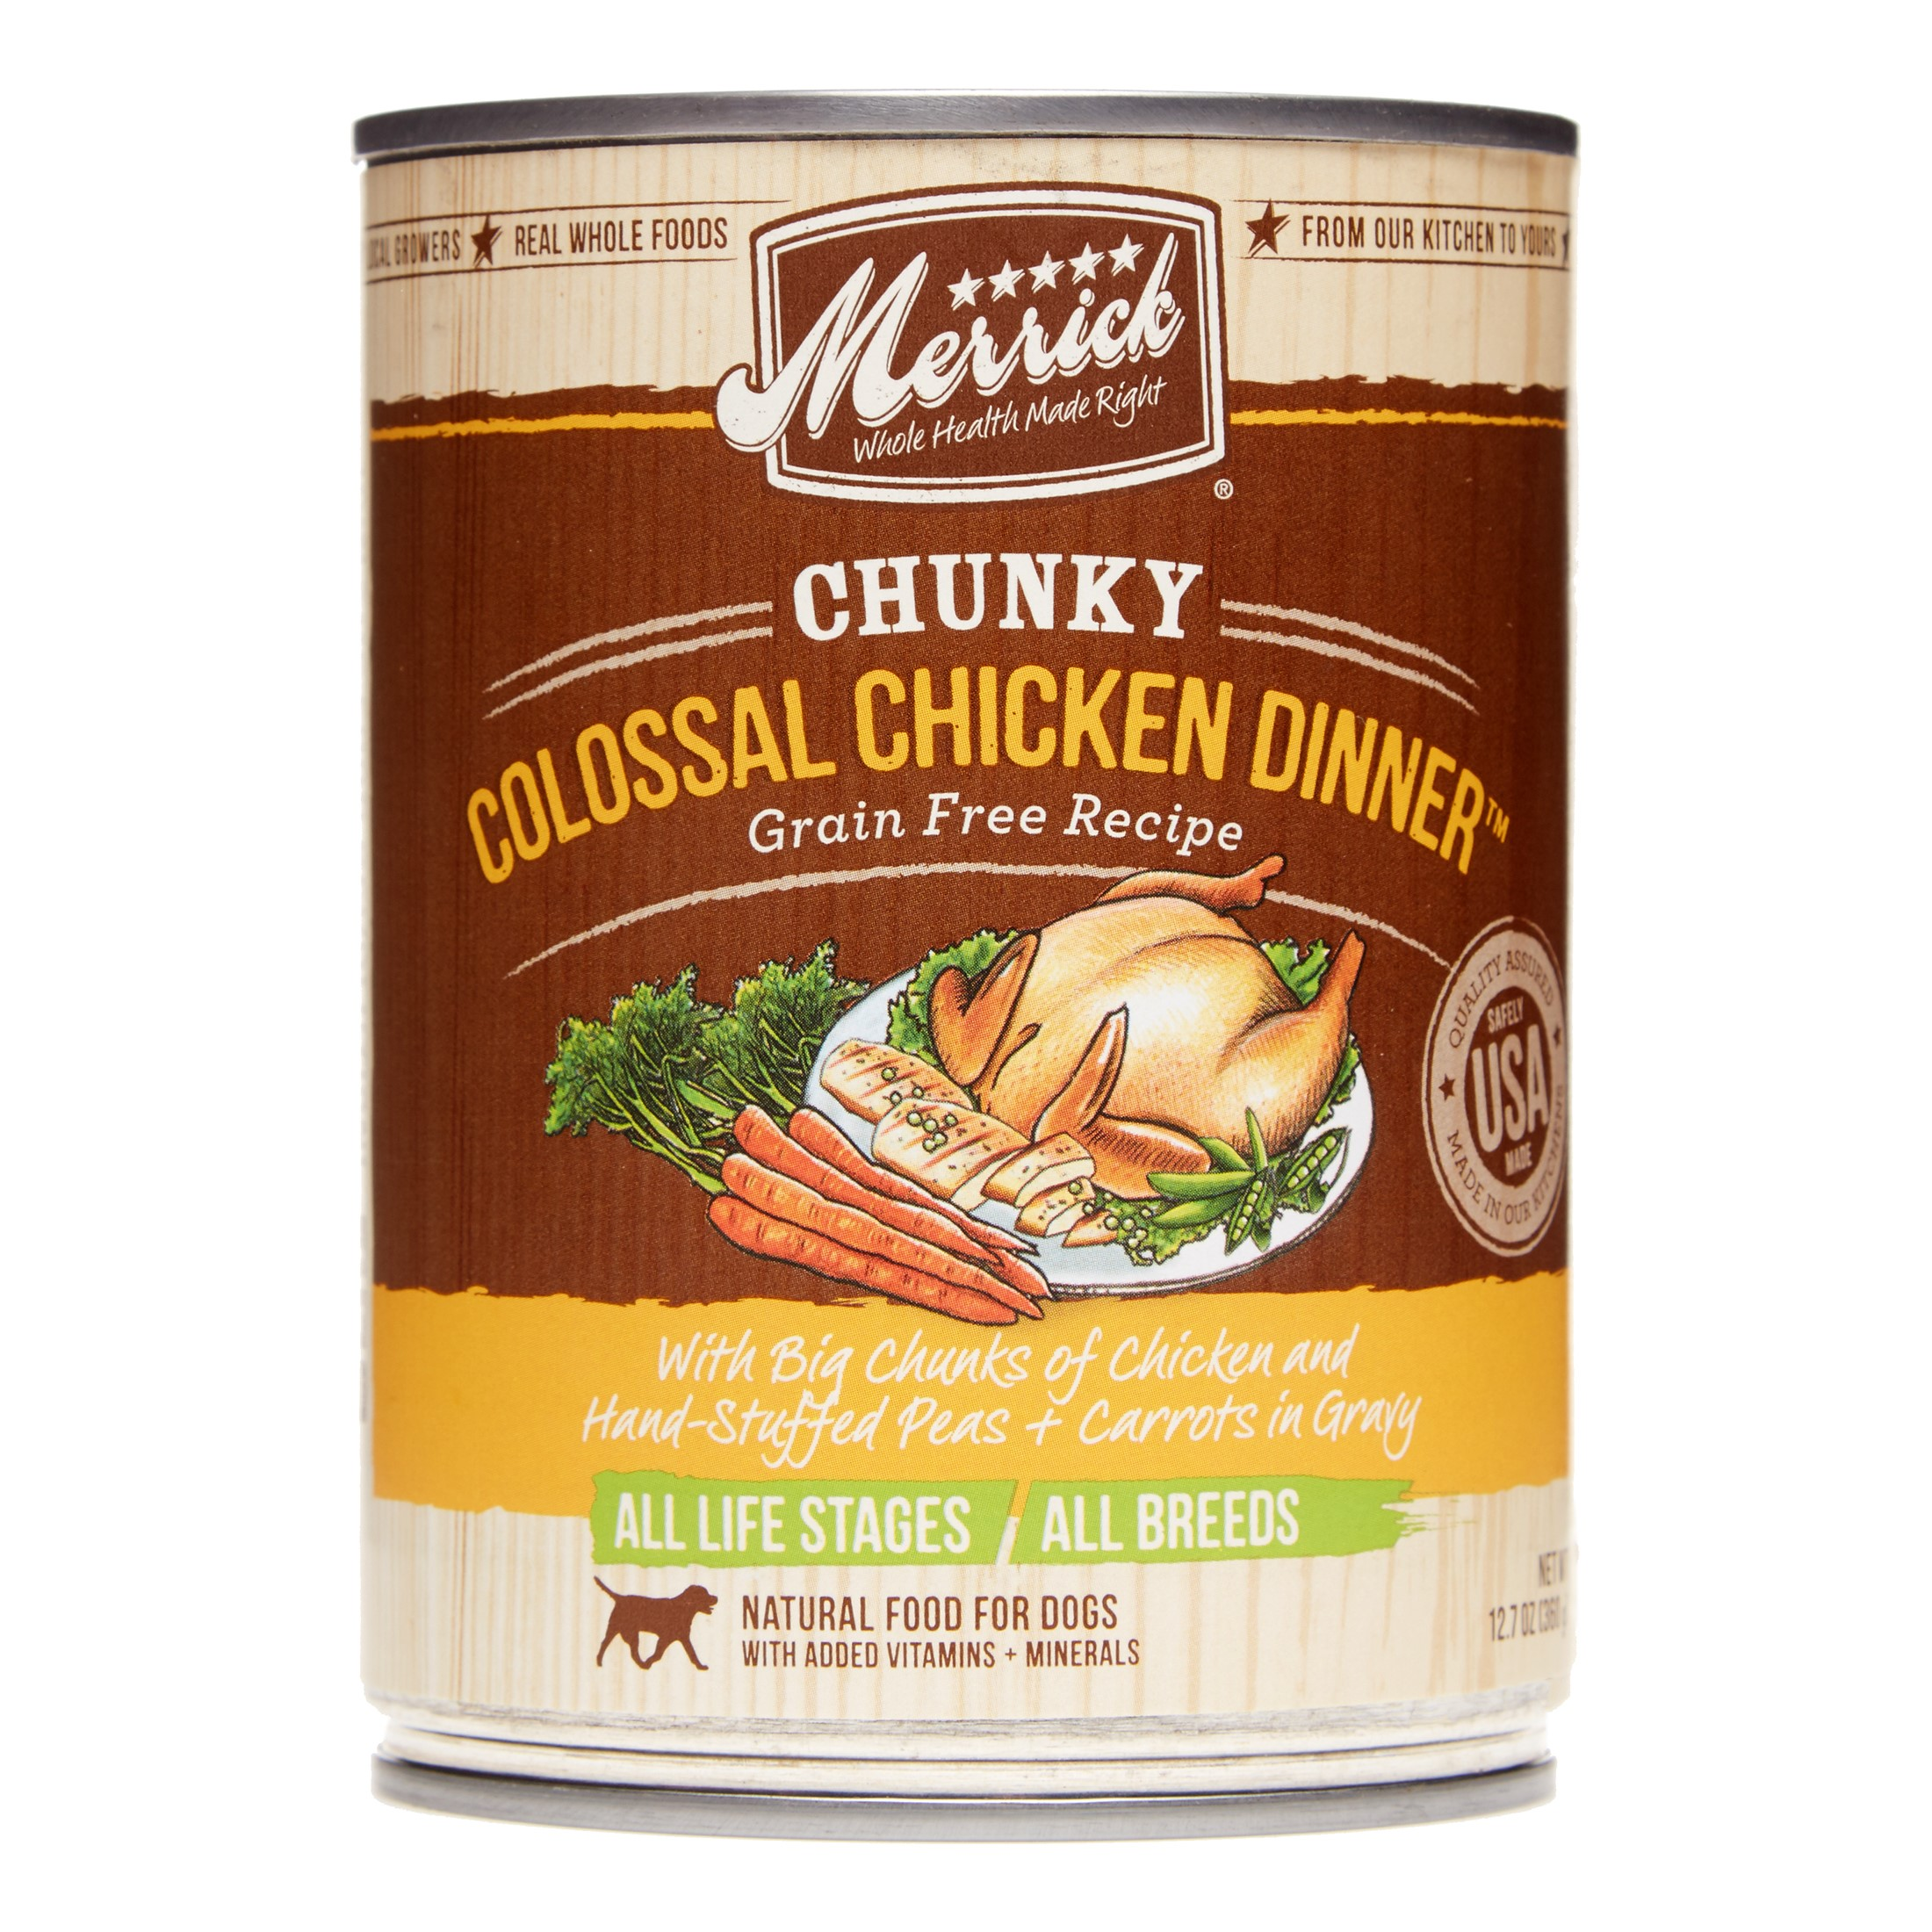 Merrick Grain-Free Chunky Colossal Chicken Dinner Wet Dog Food, 12.7 oz, Case of 12